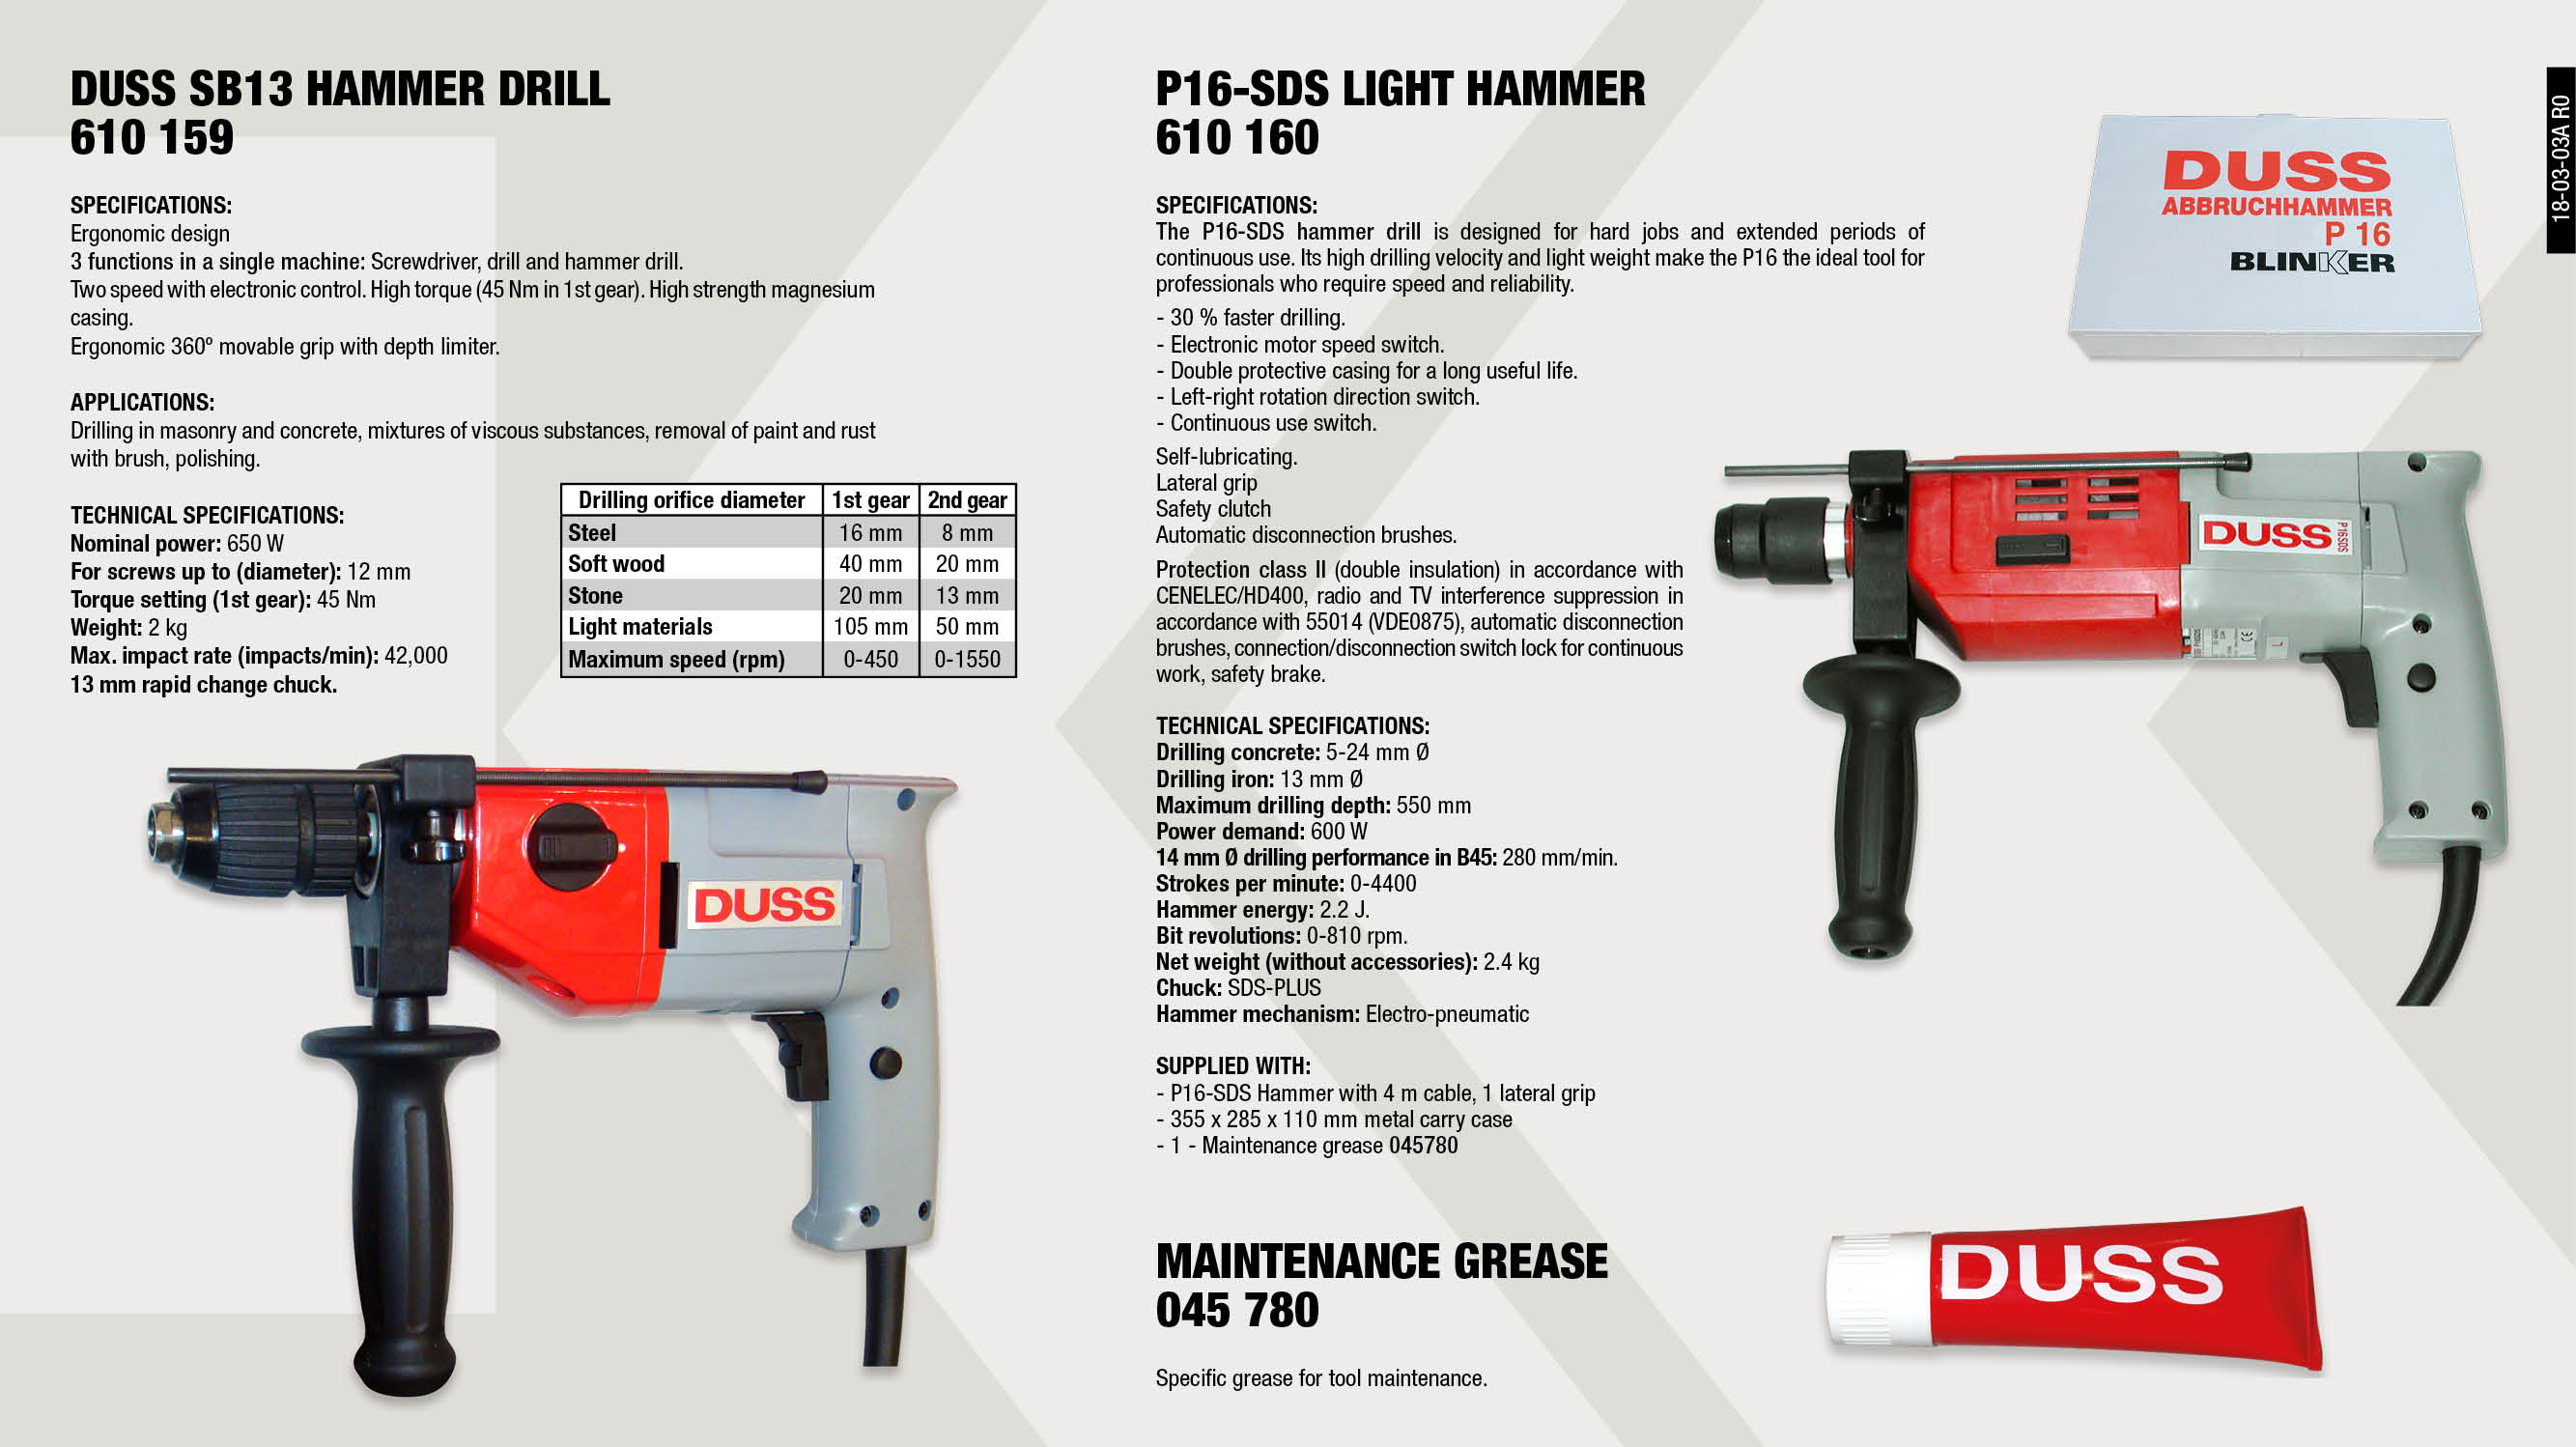 DRILL/ROTARY HAMMER P16 SDS-PLUS 2.4KG 600W                 ,  									MAINTENANCE GREASE                                          ,  									ELECTRONIC DRILL HAMMER 650W                                ,